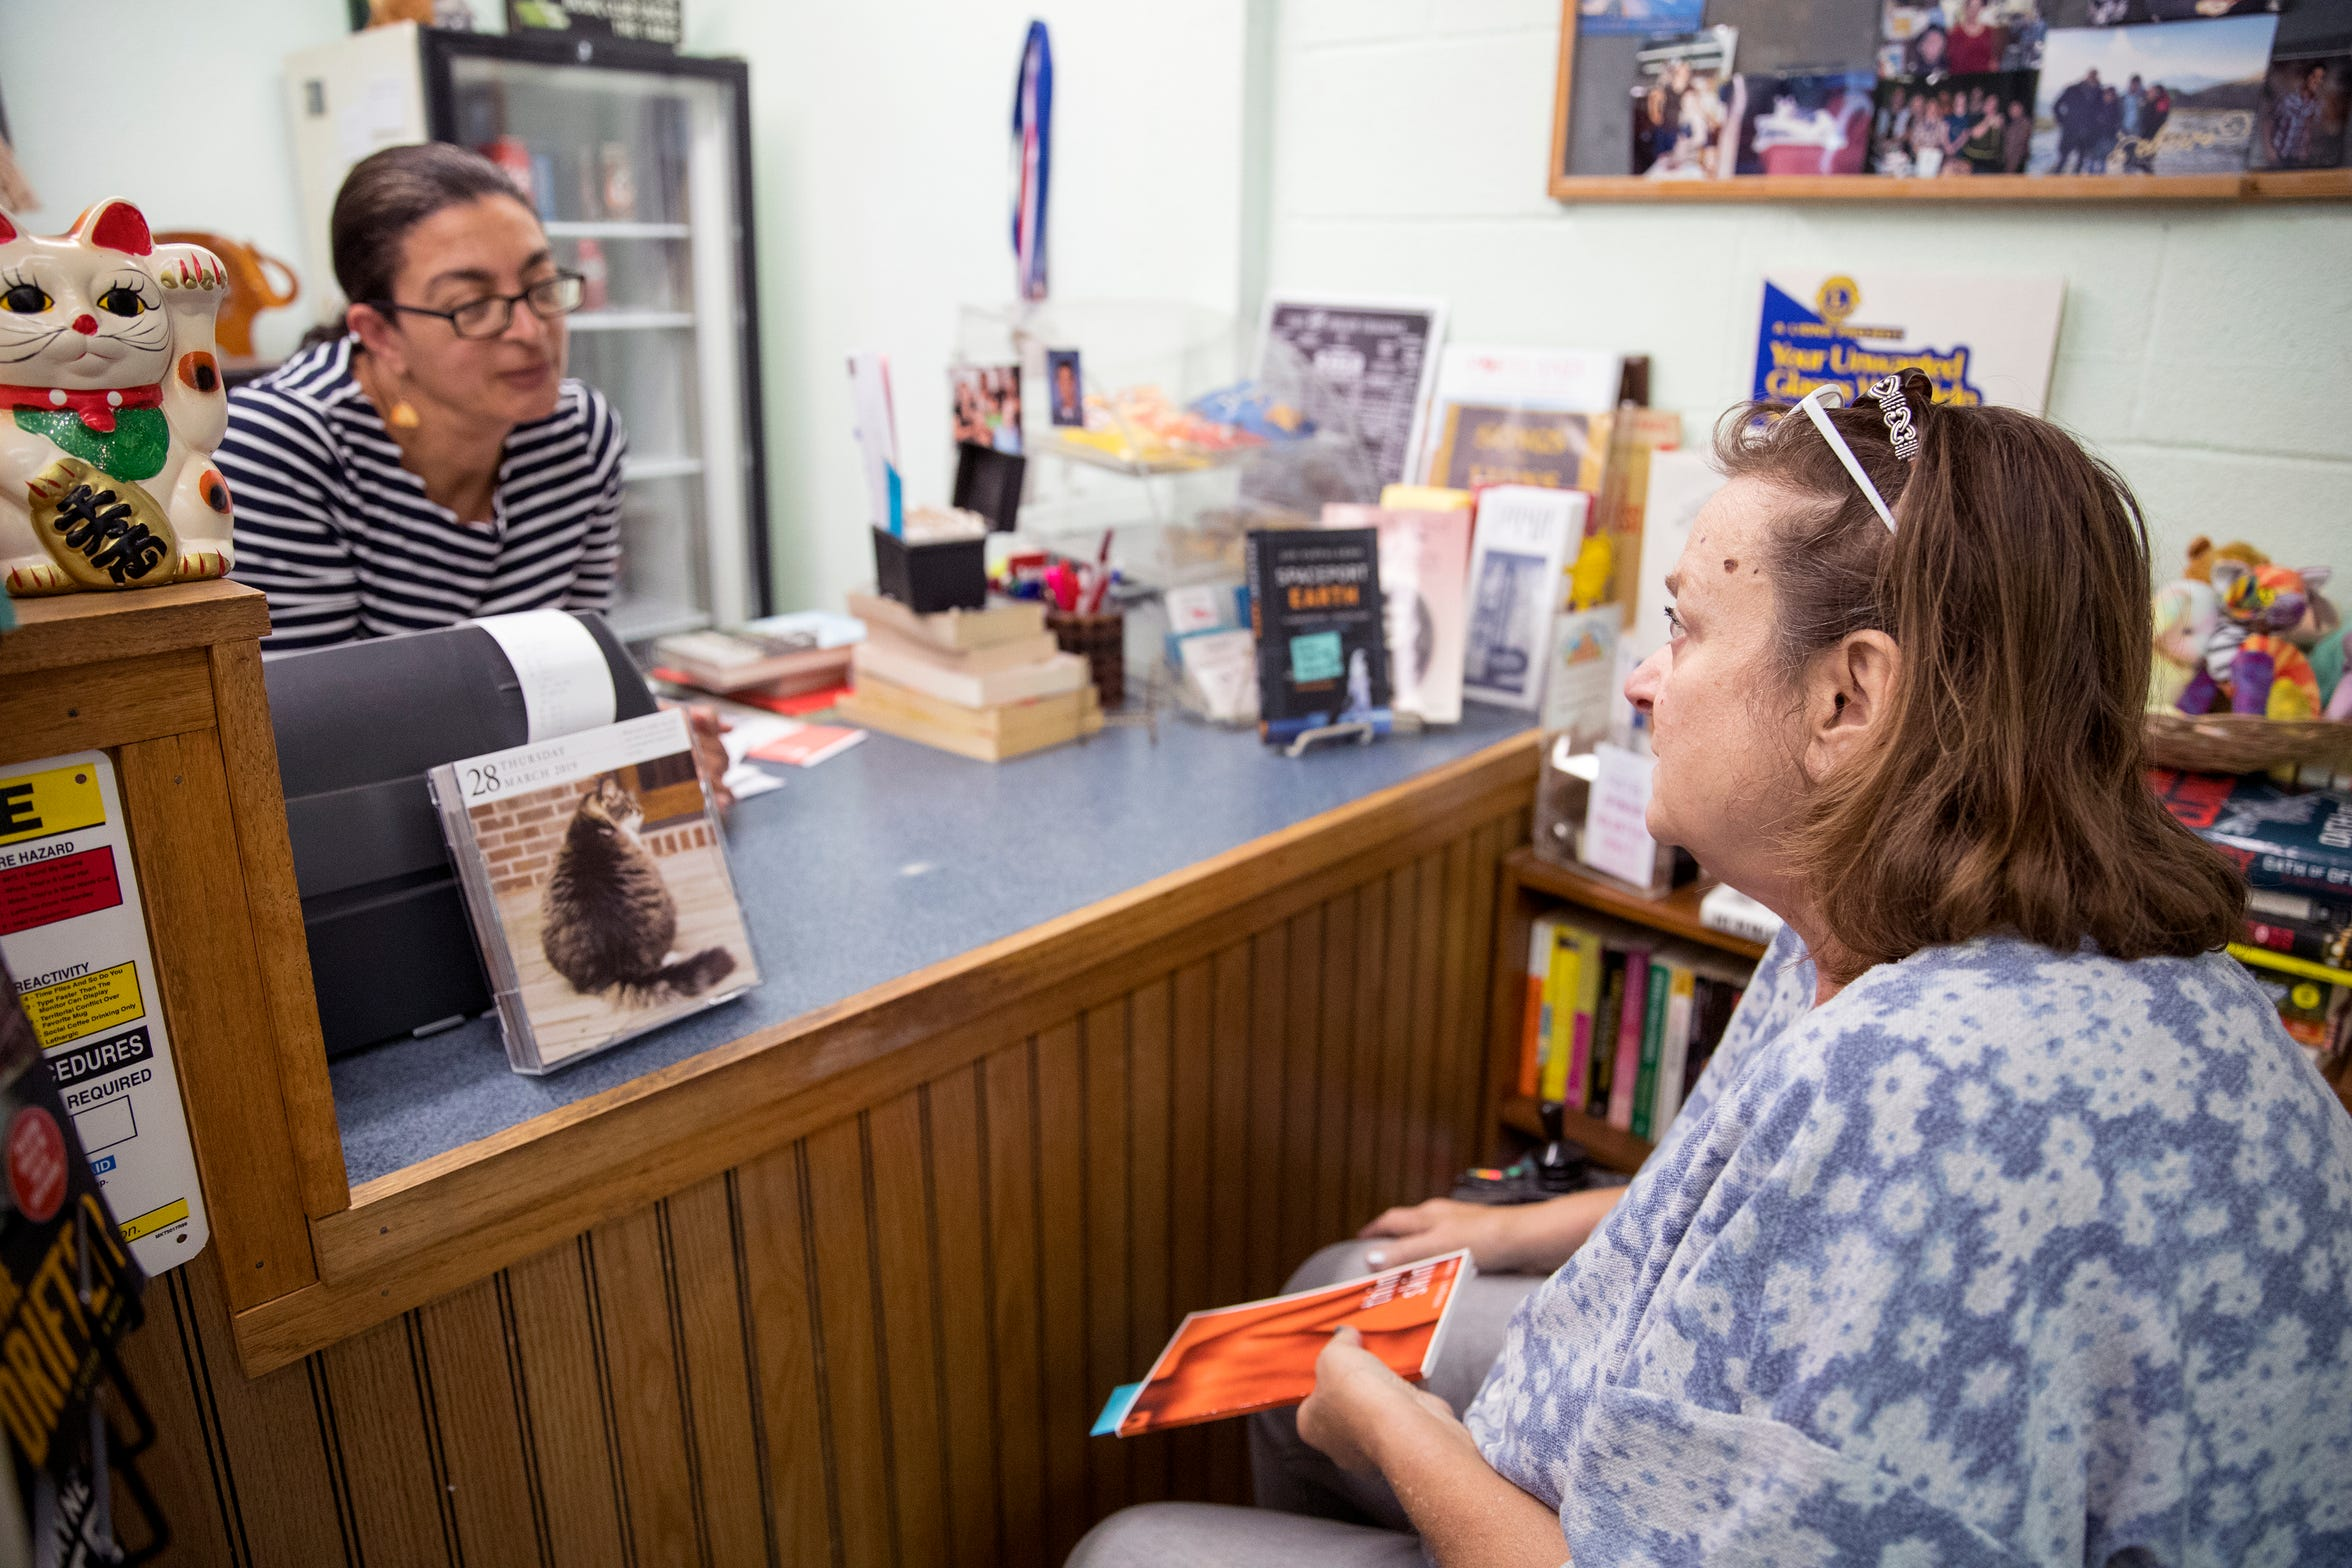 Books Ink owner Jennifer Hay (left) talks with customer Kelly Kimball last month. Kimball has been coming to the store since her children were three and 10 years old, they are now 18 and 25. She said the bookstore is a place of community in Portland.